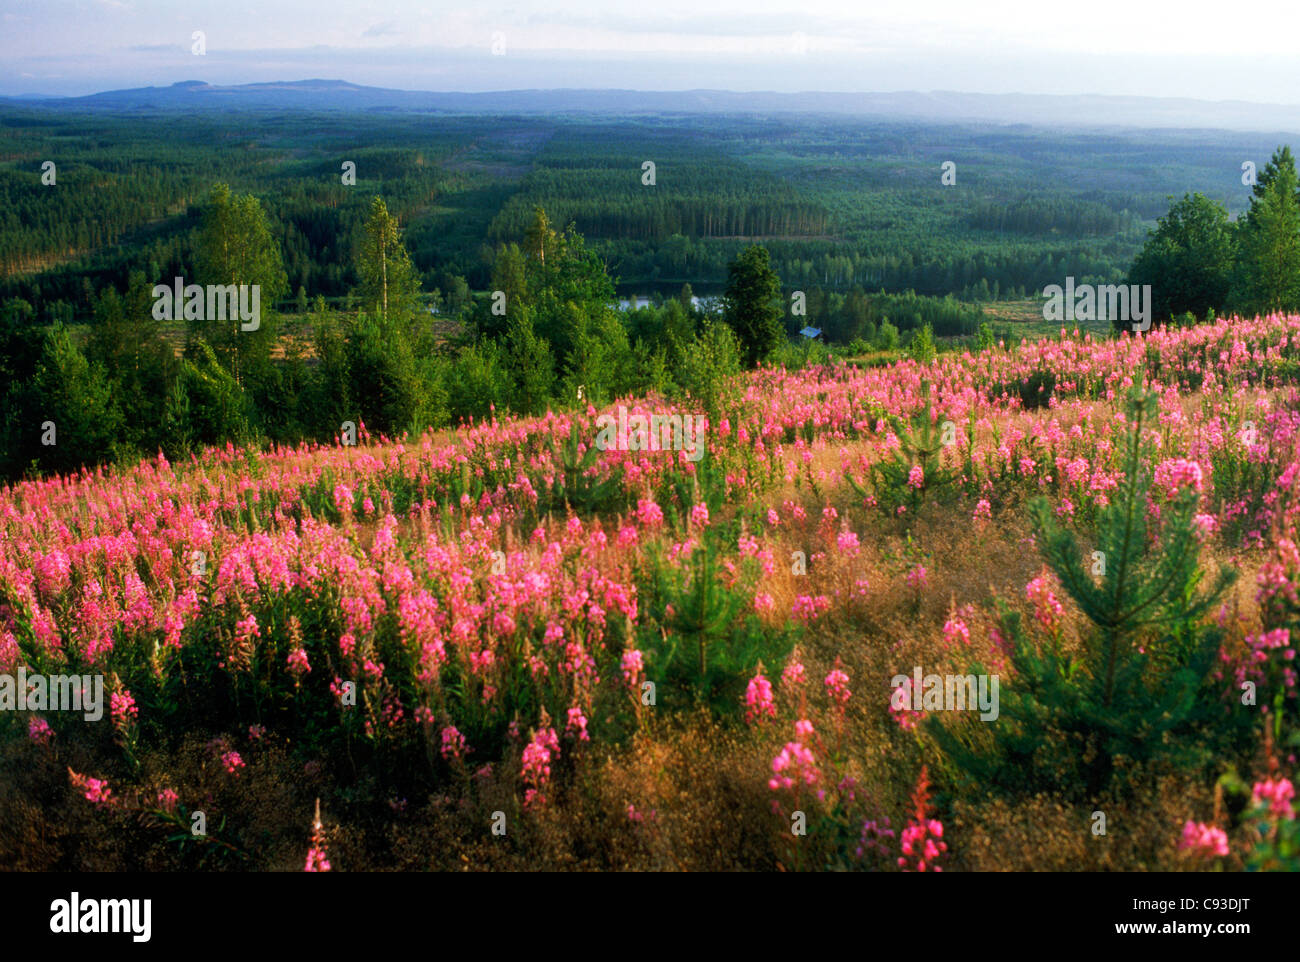 Härjedalen is province of unspoiled nature in the center of Sweden that borders Norway as well as Dalarna province - Stock Image